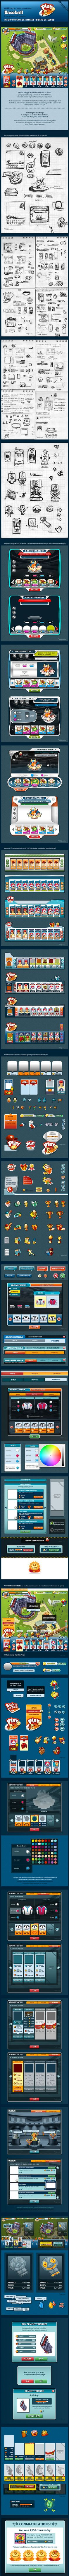 Baseball-Social-Game---GUI-Design-on-Behance